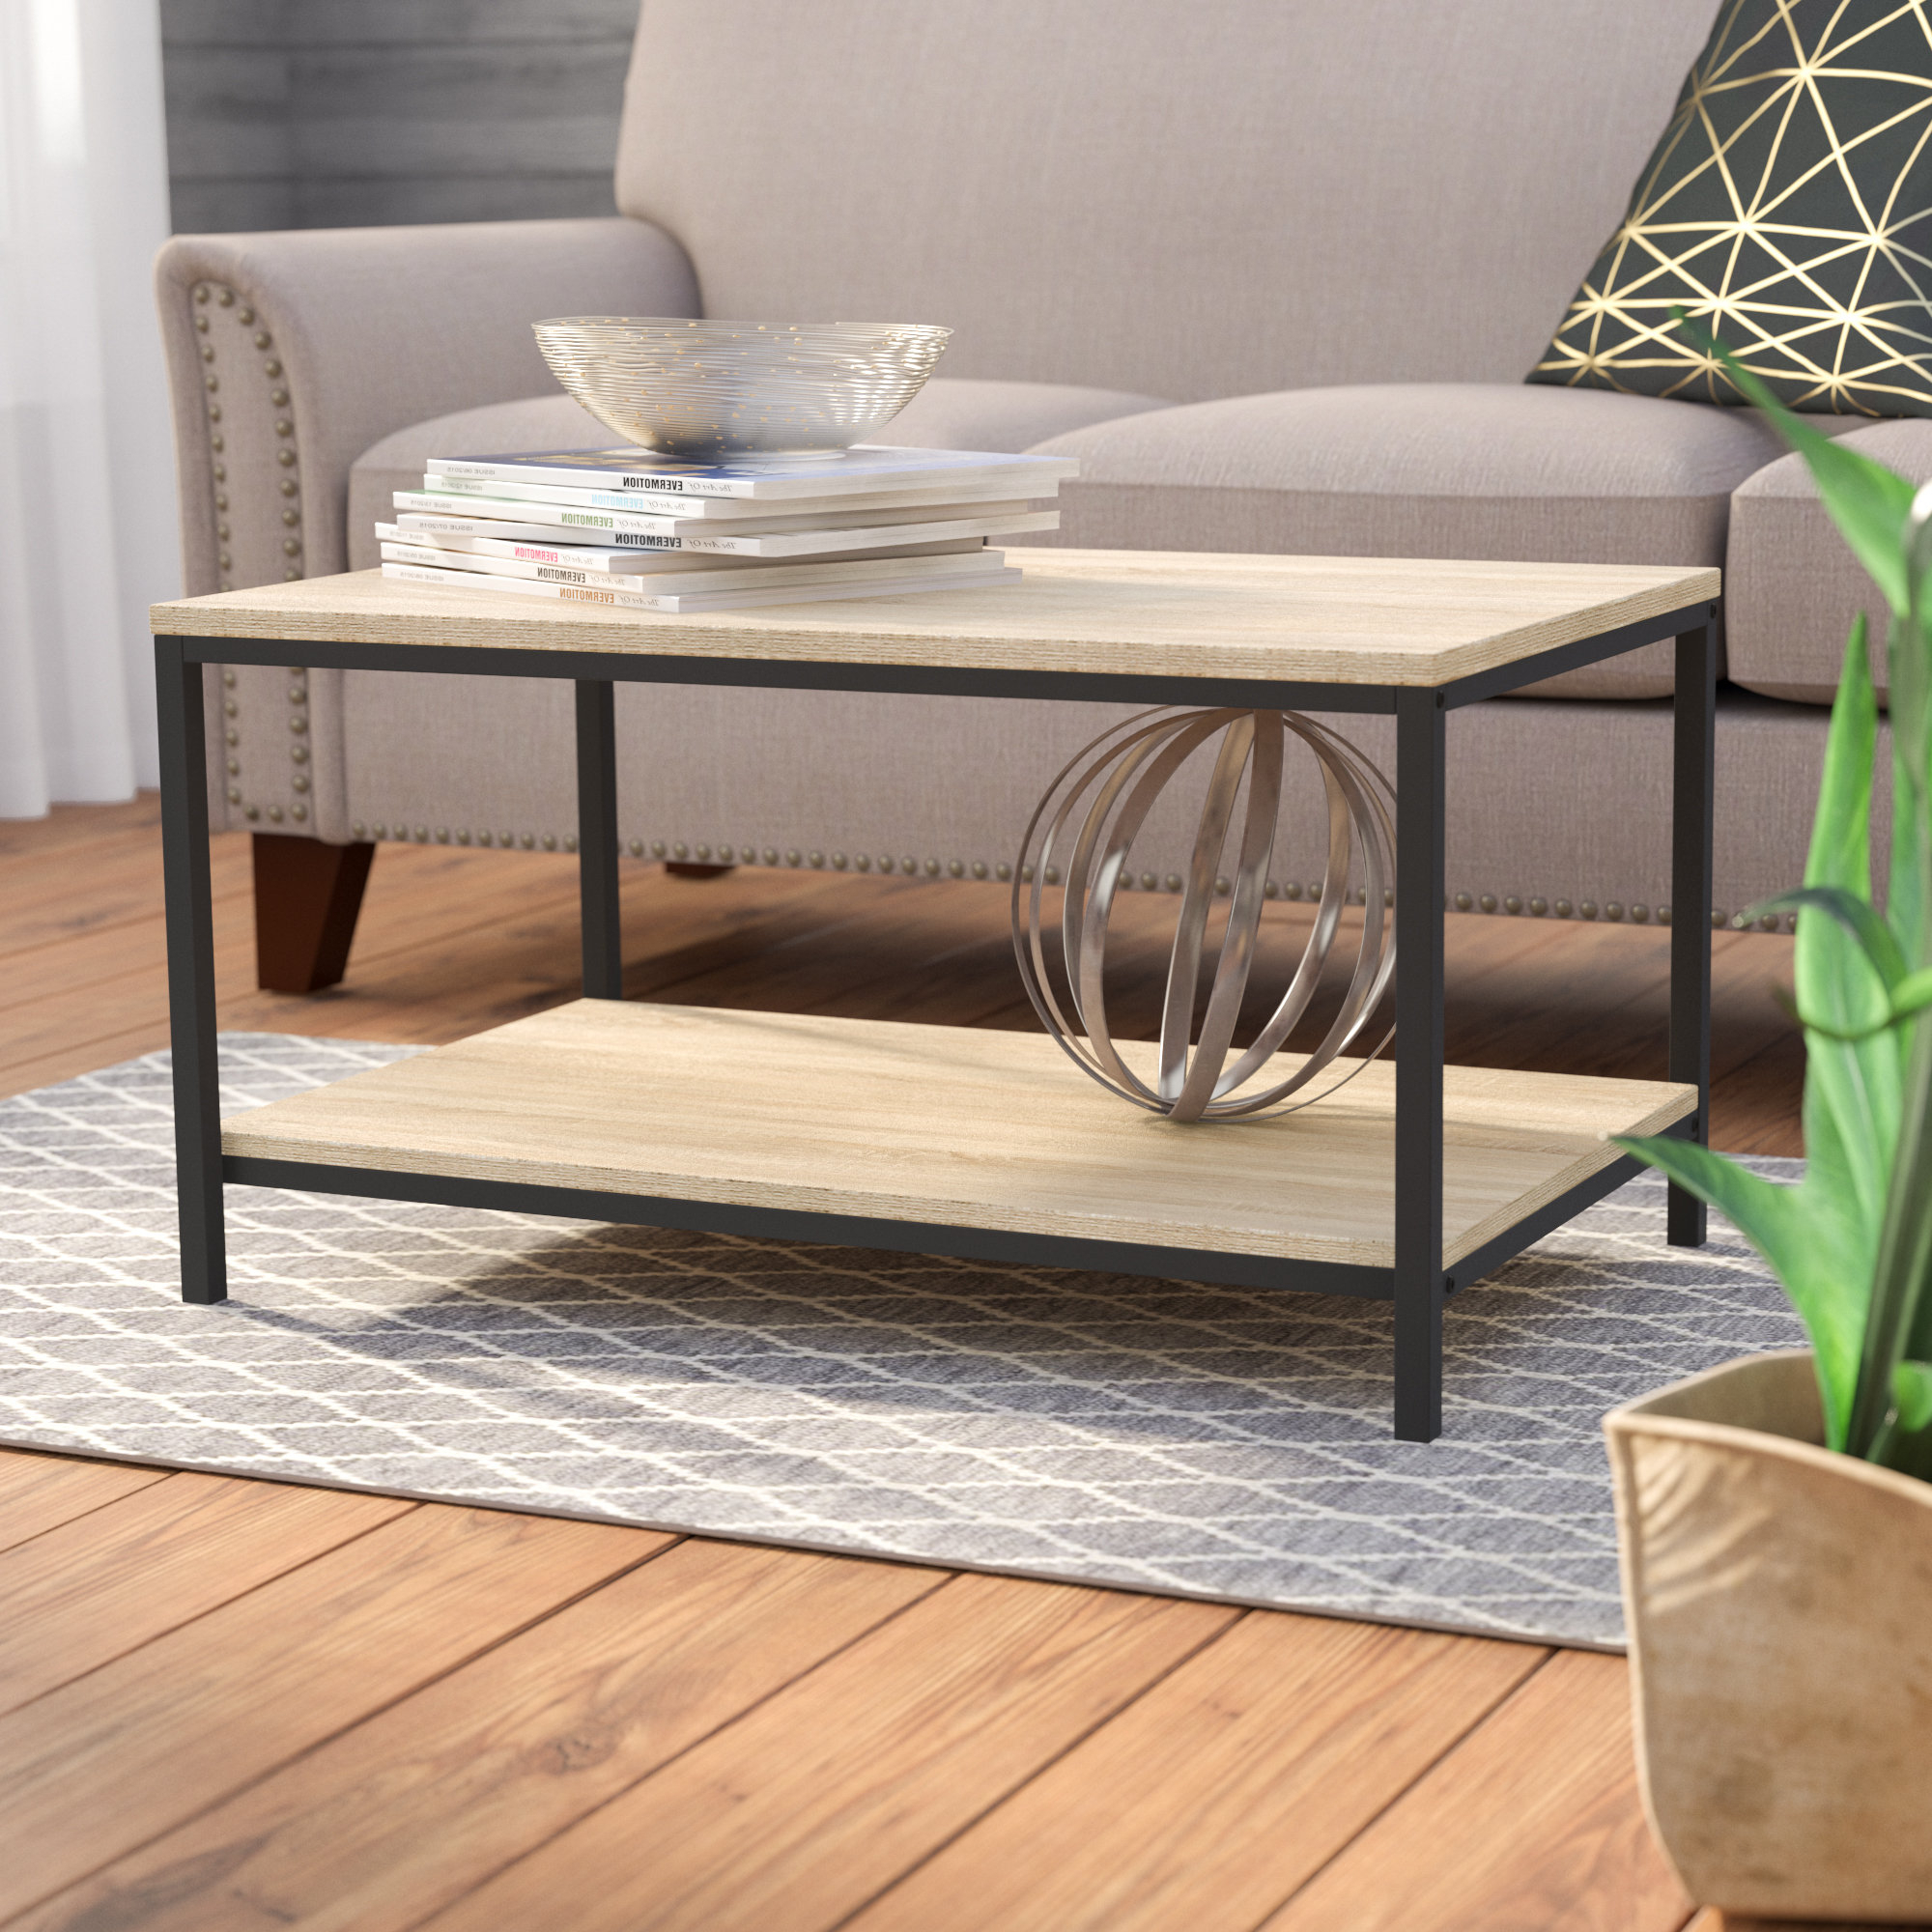 Recent Large Scale Chinese Farmhouse Coffee Tables Pertaining To Laurel Foundry Modern Farmhouse Ermont Coffee Table & Reviews (View 12 of 20)